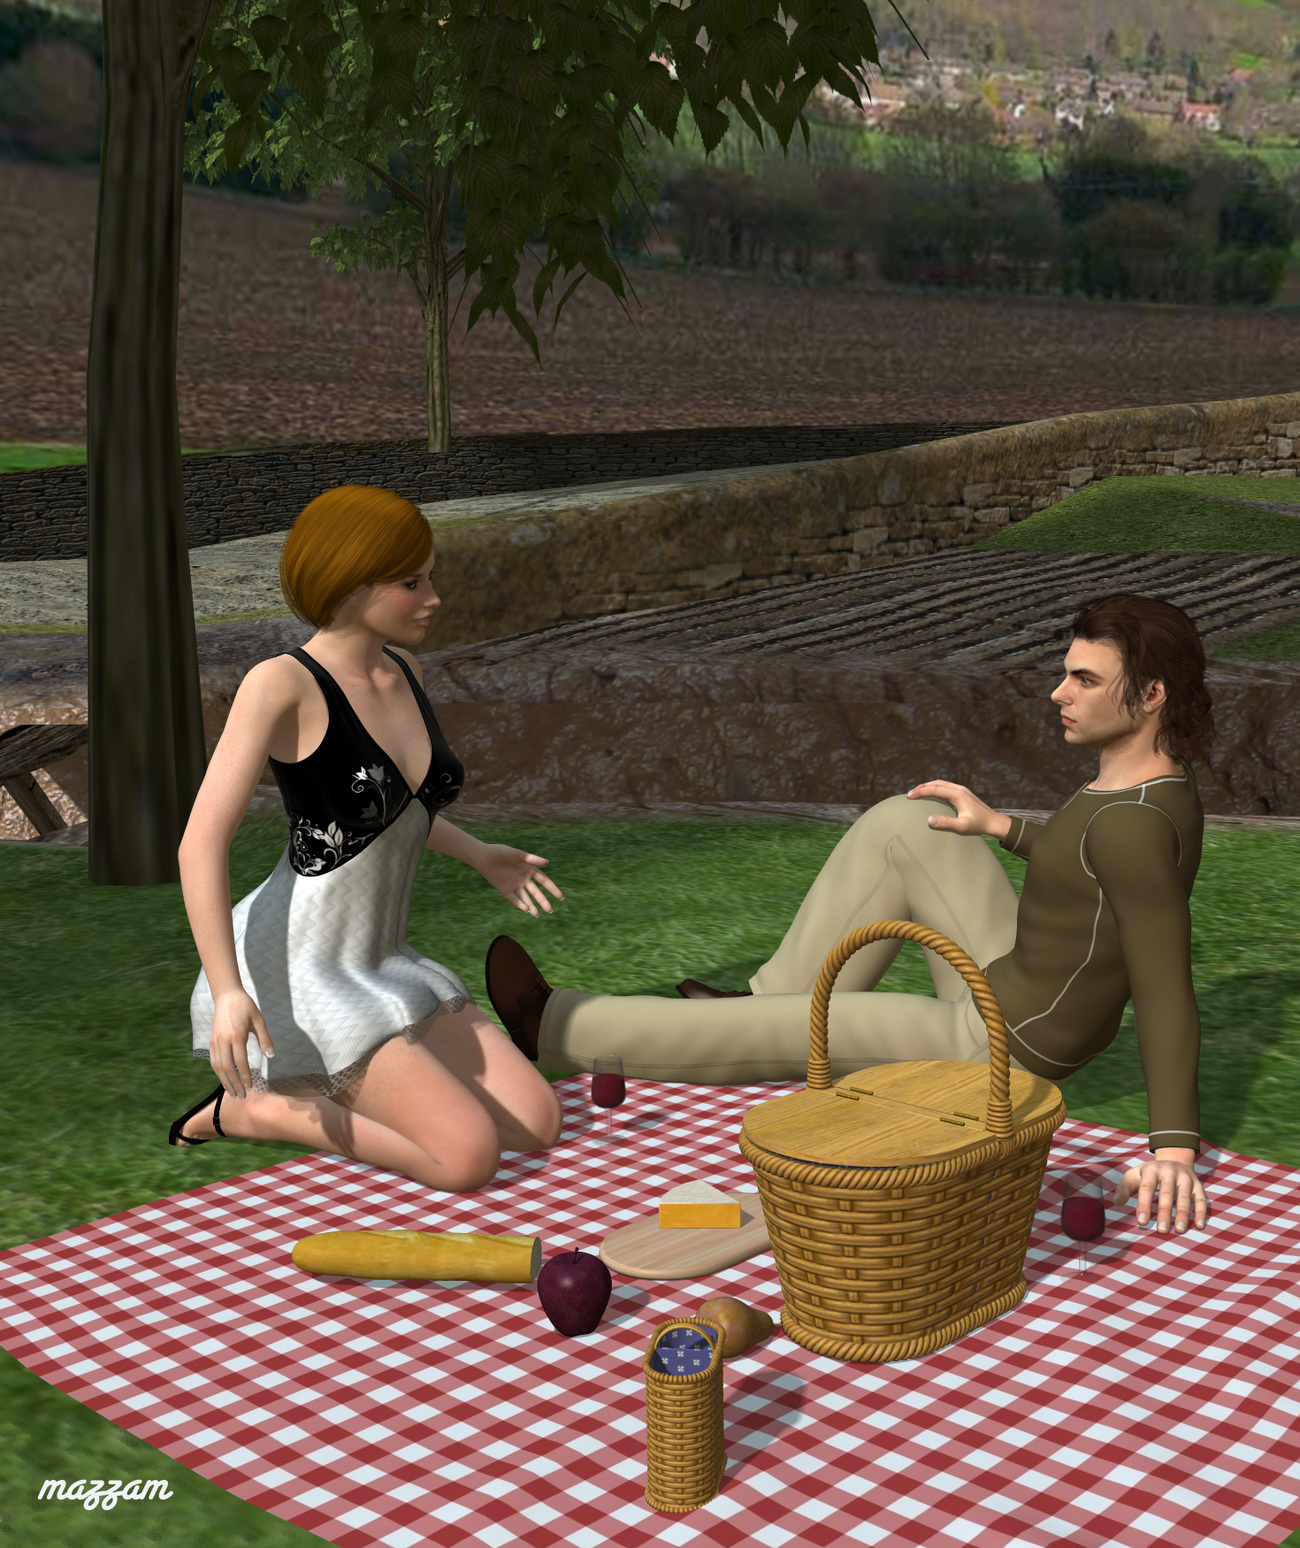 22 - Picnic on the Grass by mazzam